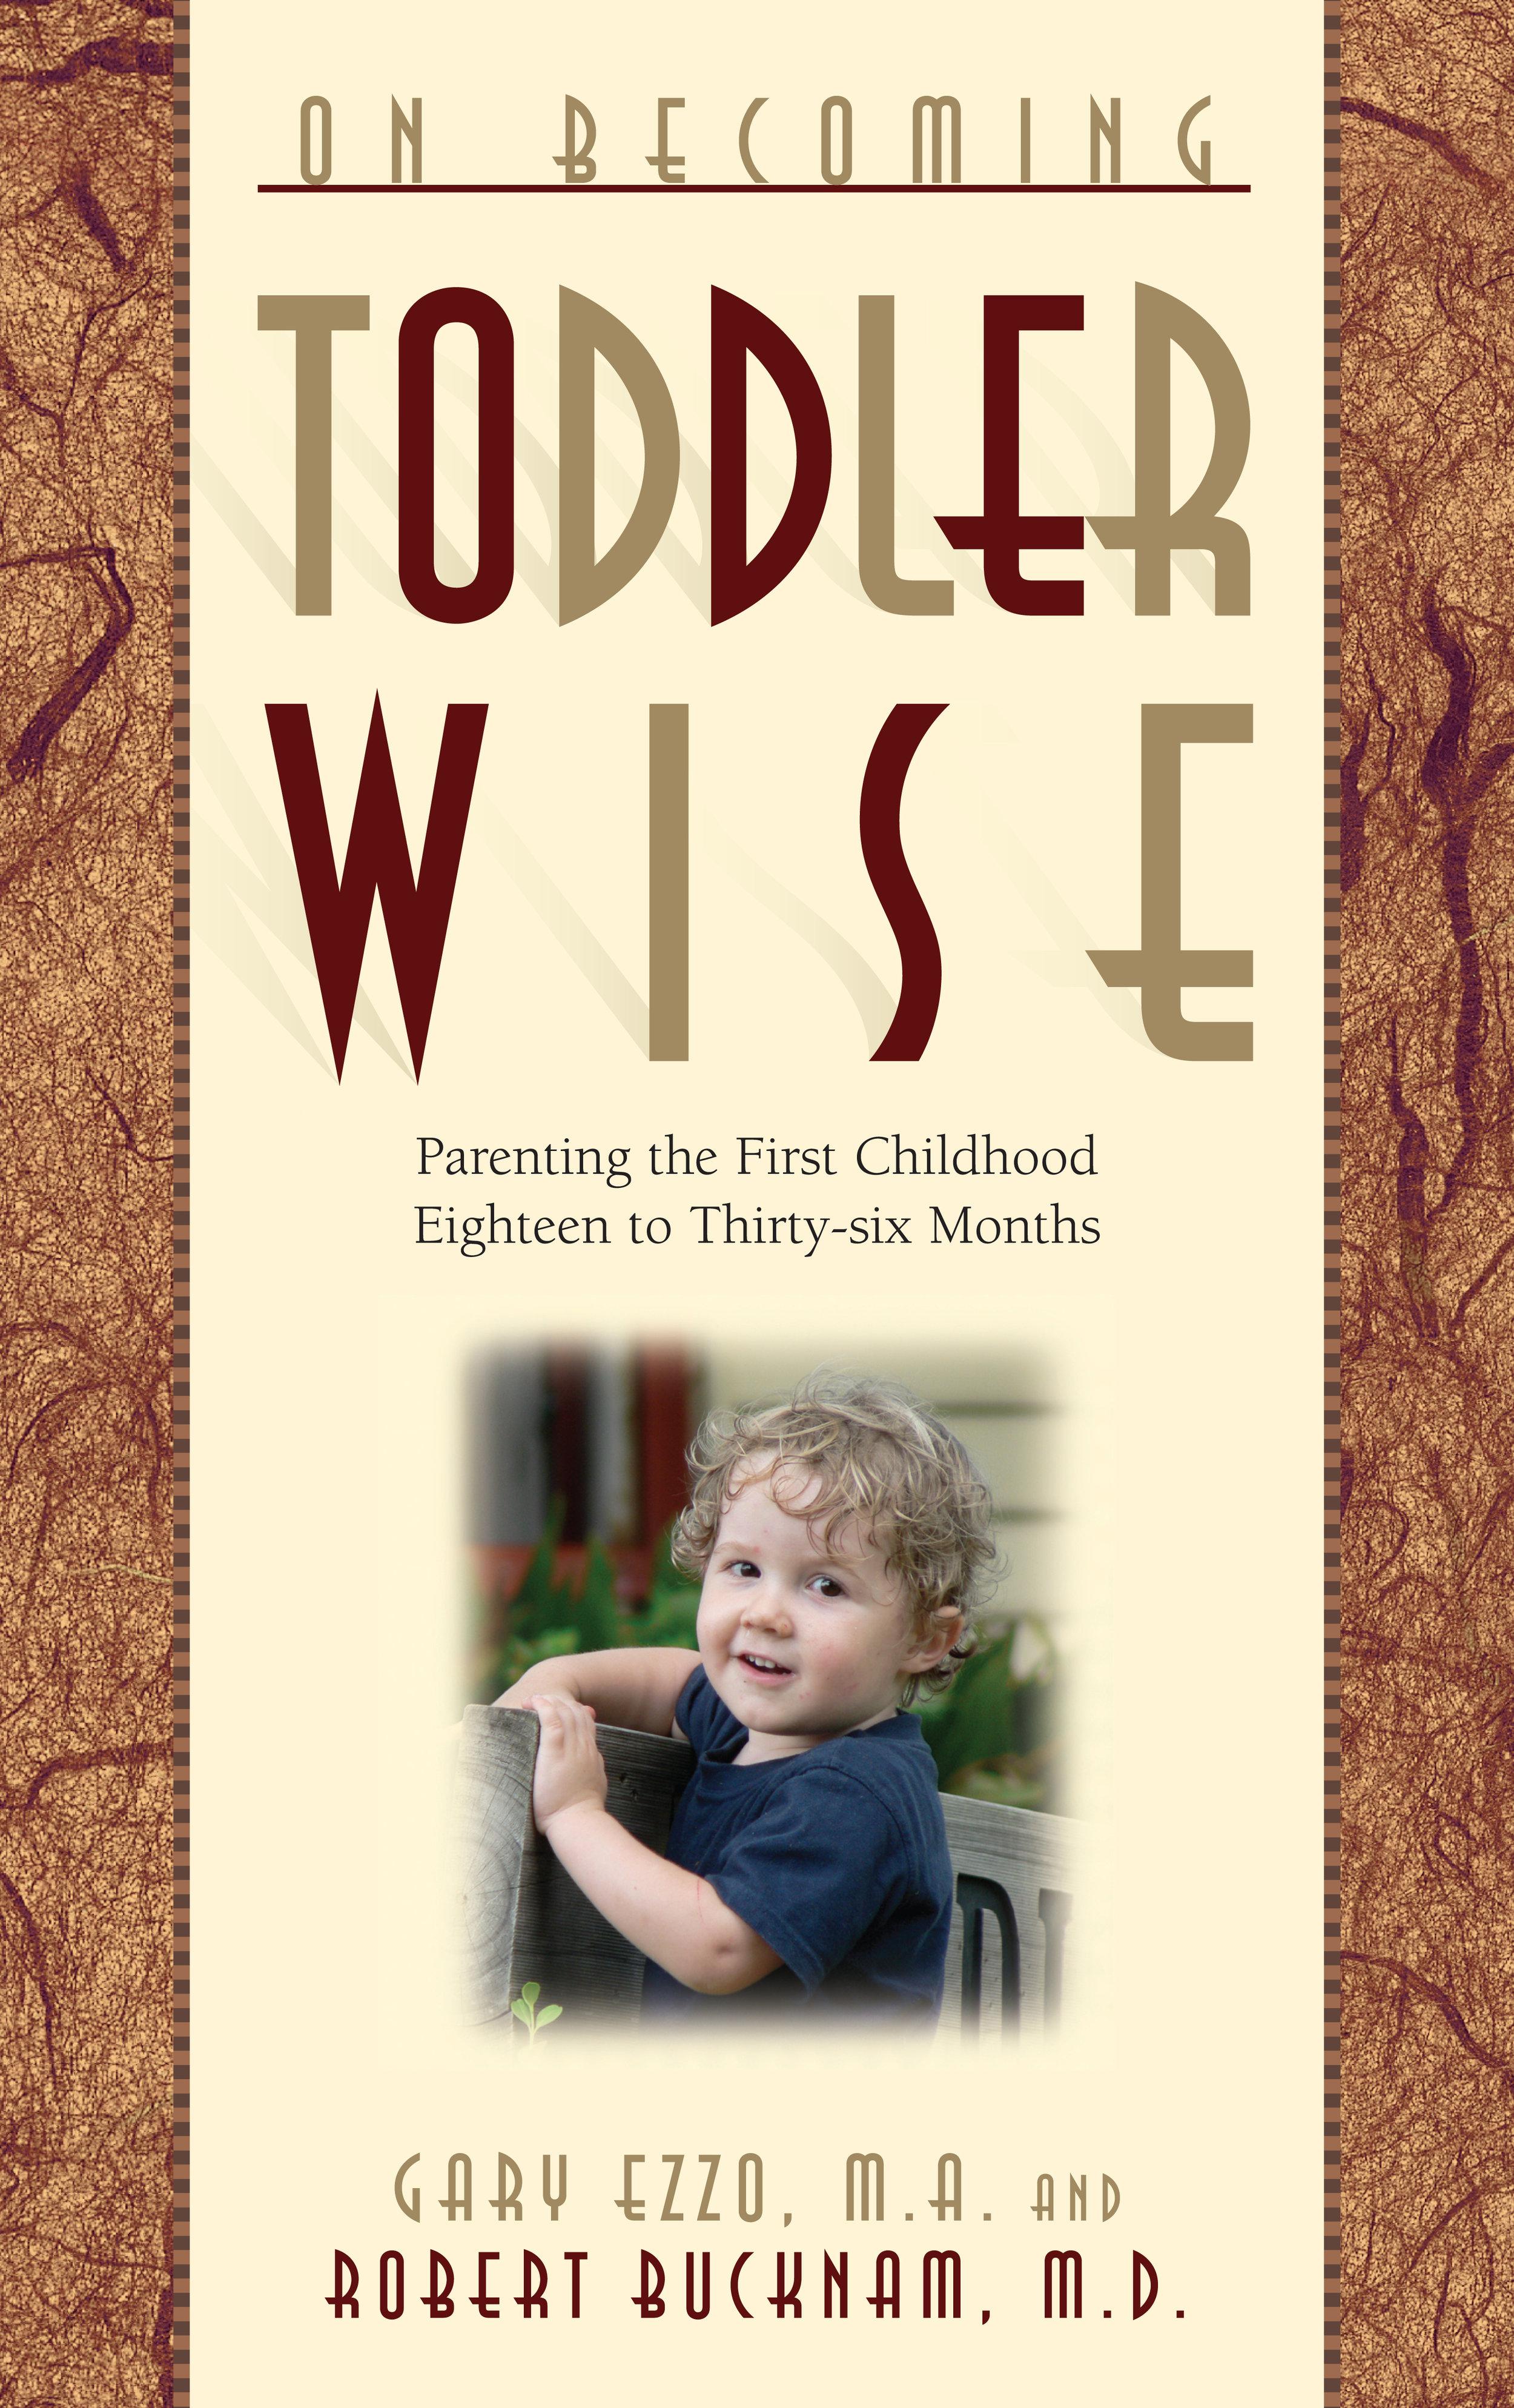 3004 On Becoming Toddlerwise Front Cover 600dpi .jpg